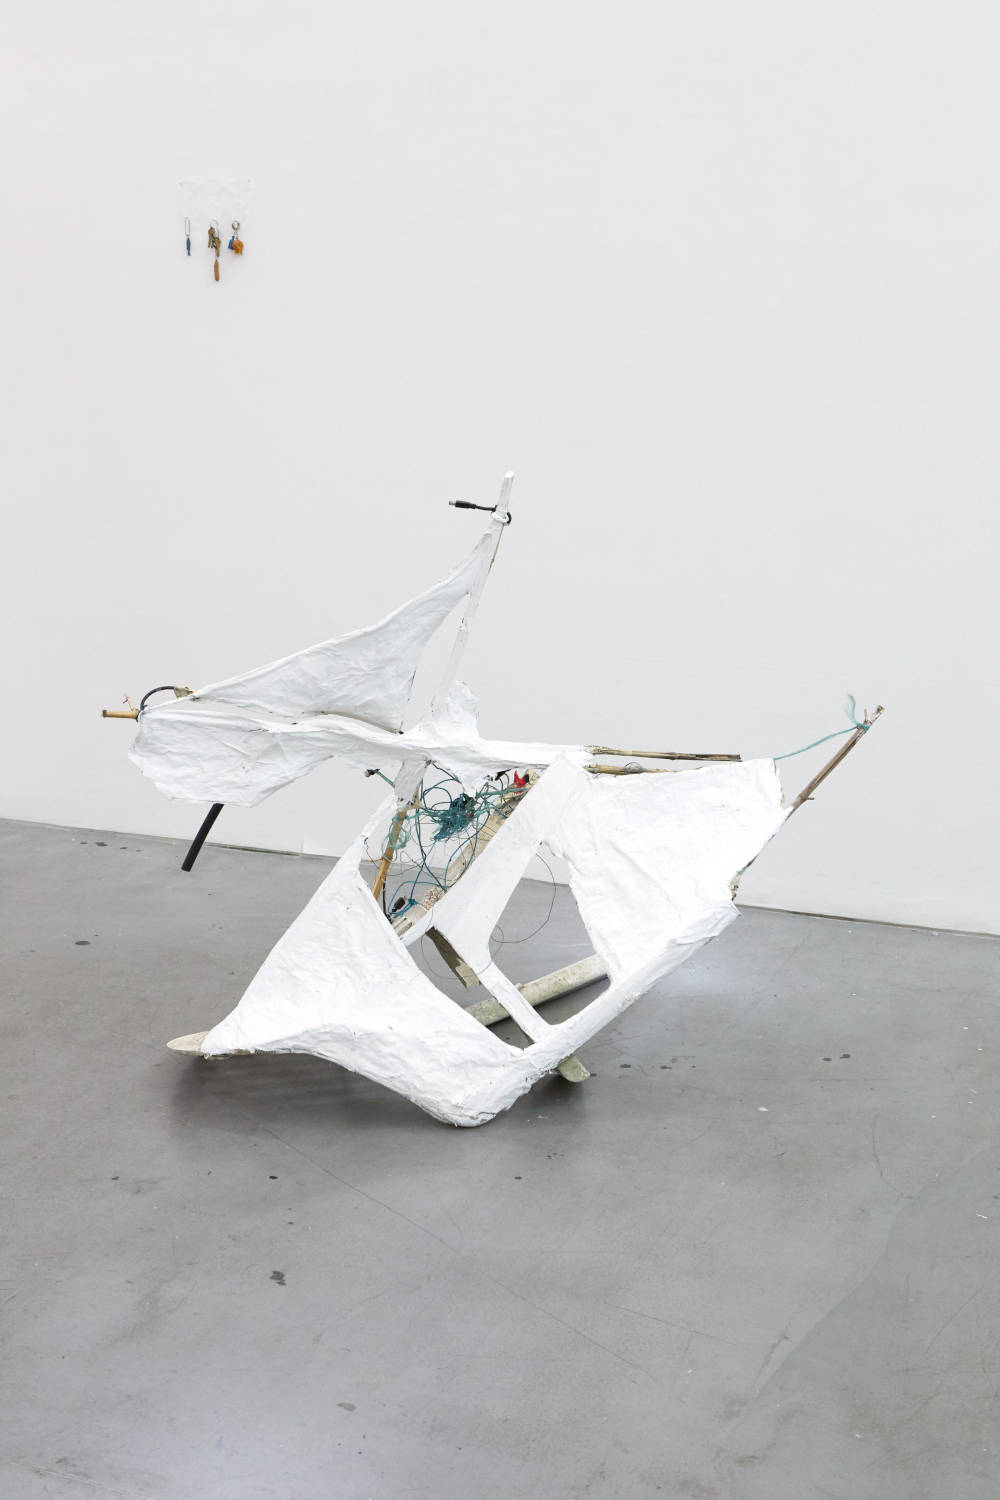 Ryan Foerster, chair, 2019. Plastic, newspaper, string, wire, paint 110 x 150 x 100 cm (43.31 x 59.06 x 39.37 inches) Courtesy of the artist & VNH Gallery. Photo: Johanna Benaïnous